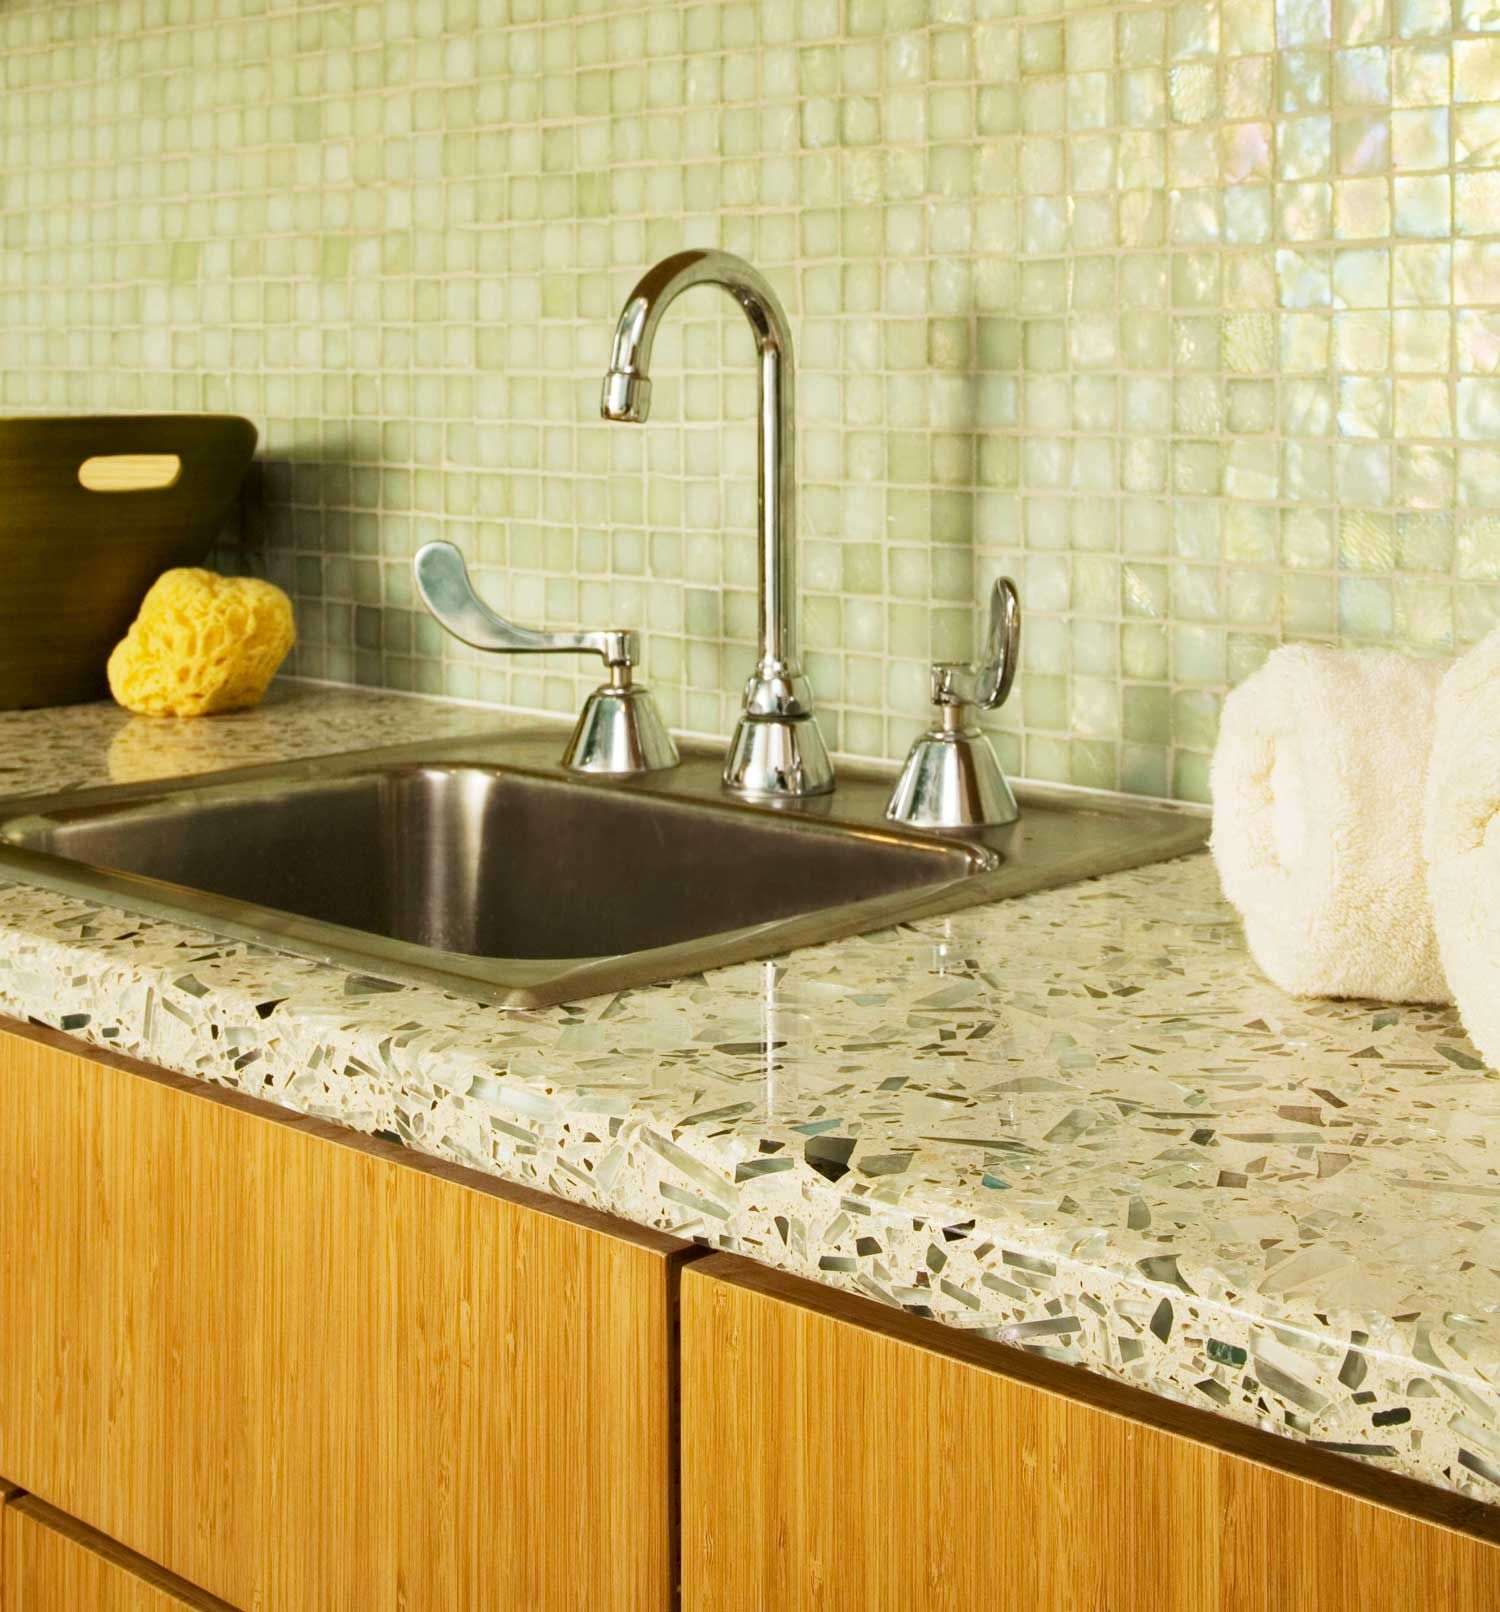 Countertops Denver Co Recycled Galss Counter With Mother Of Pearl Backsplash